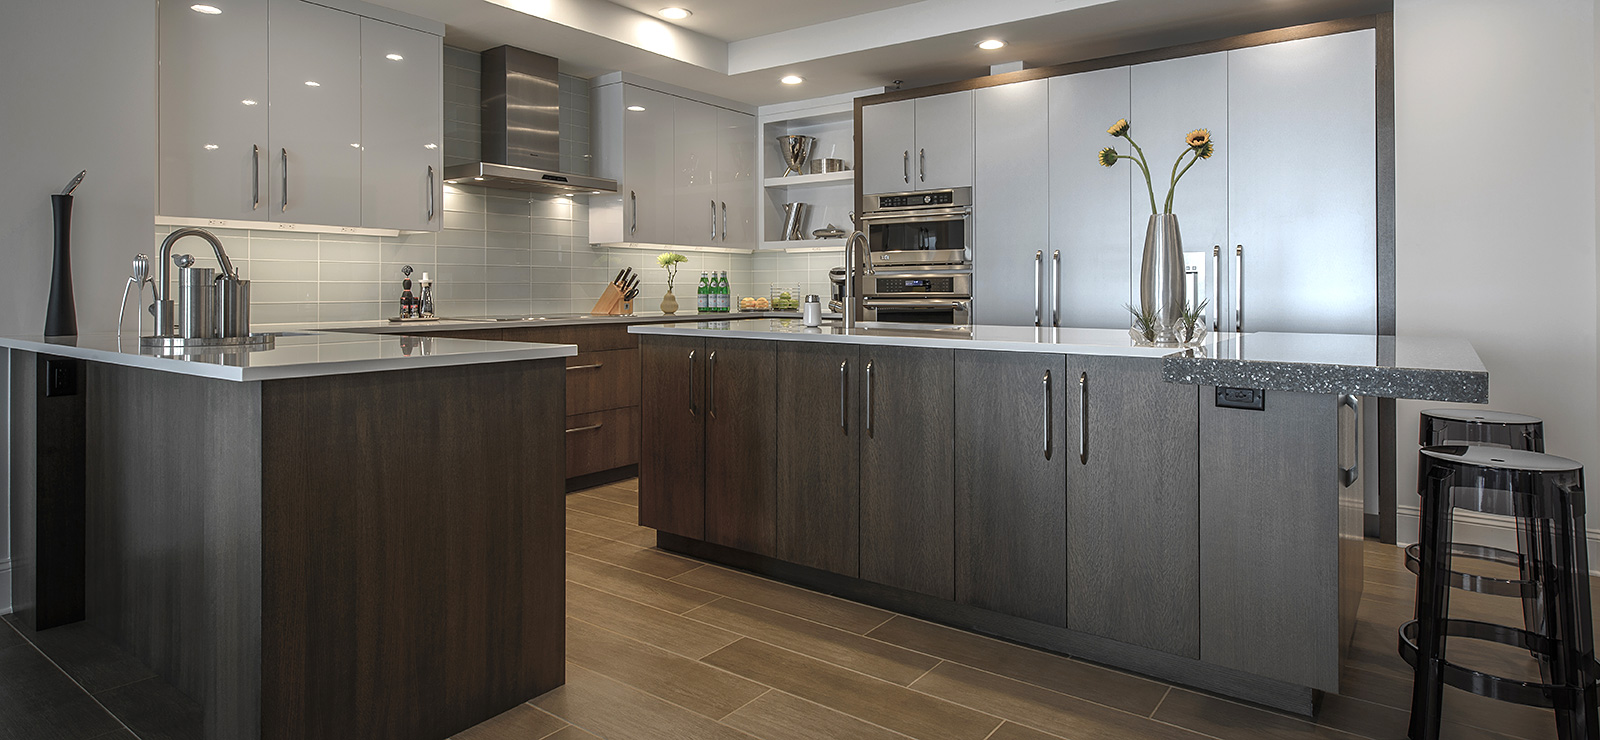 Distinguished Custom Cabinets In Jacksonville And Northeast Florida